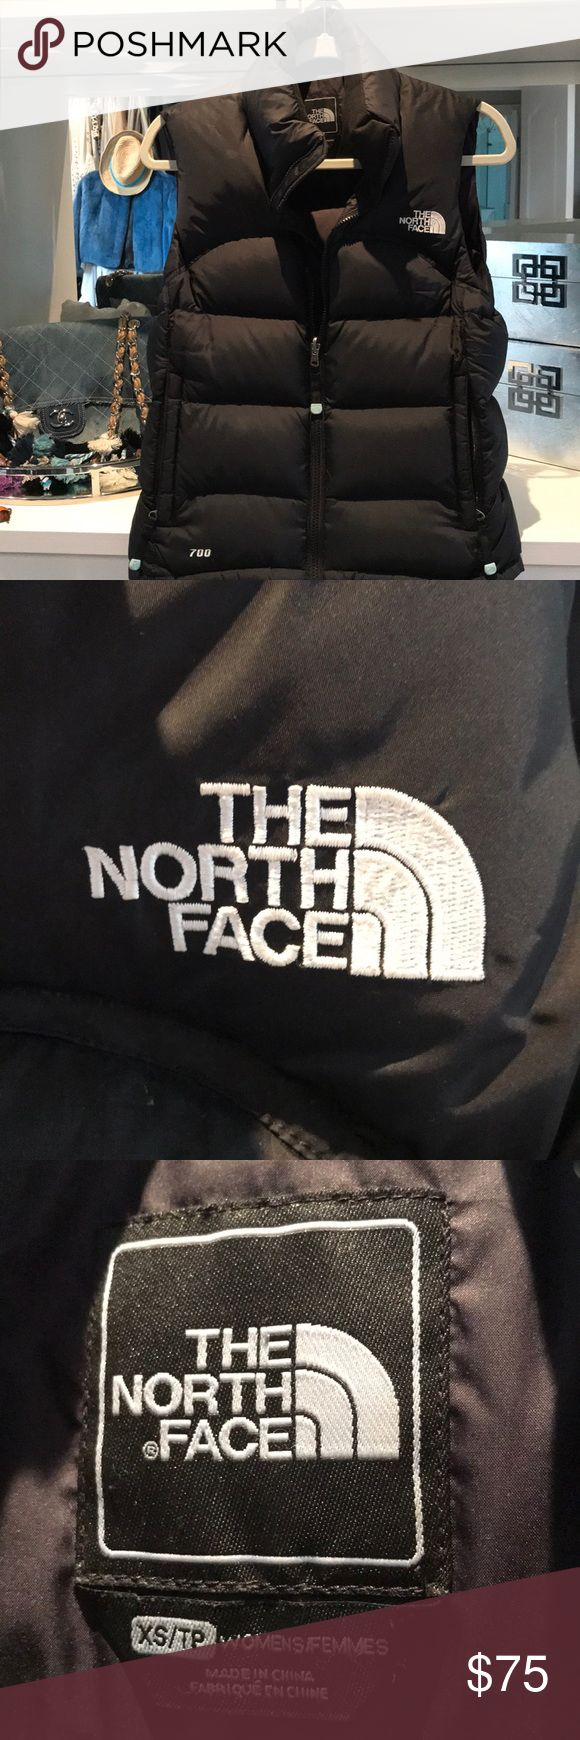 North face Nuptse 2 700 black down vest Black north face puffer style with zip pockets on exterior and hidden inside pocket. A staple and a great layering piece. The North Face Jackets & Coats Vests